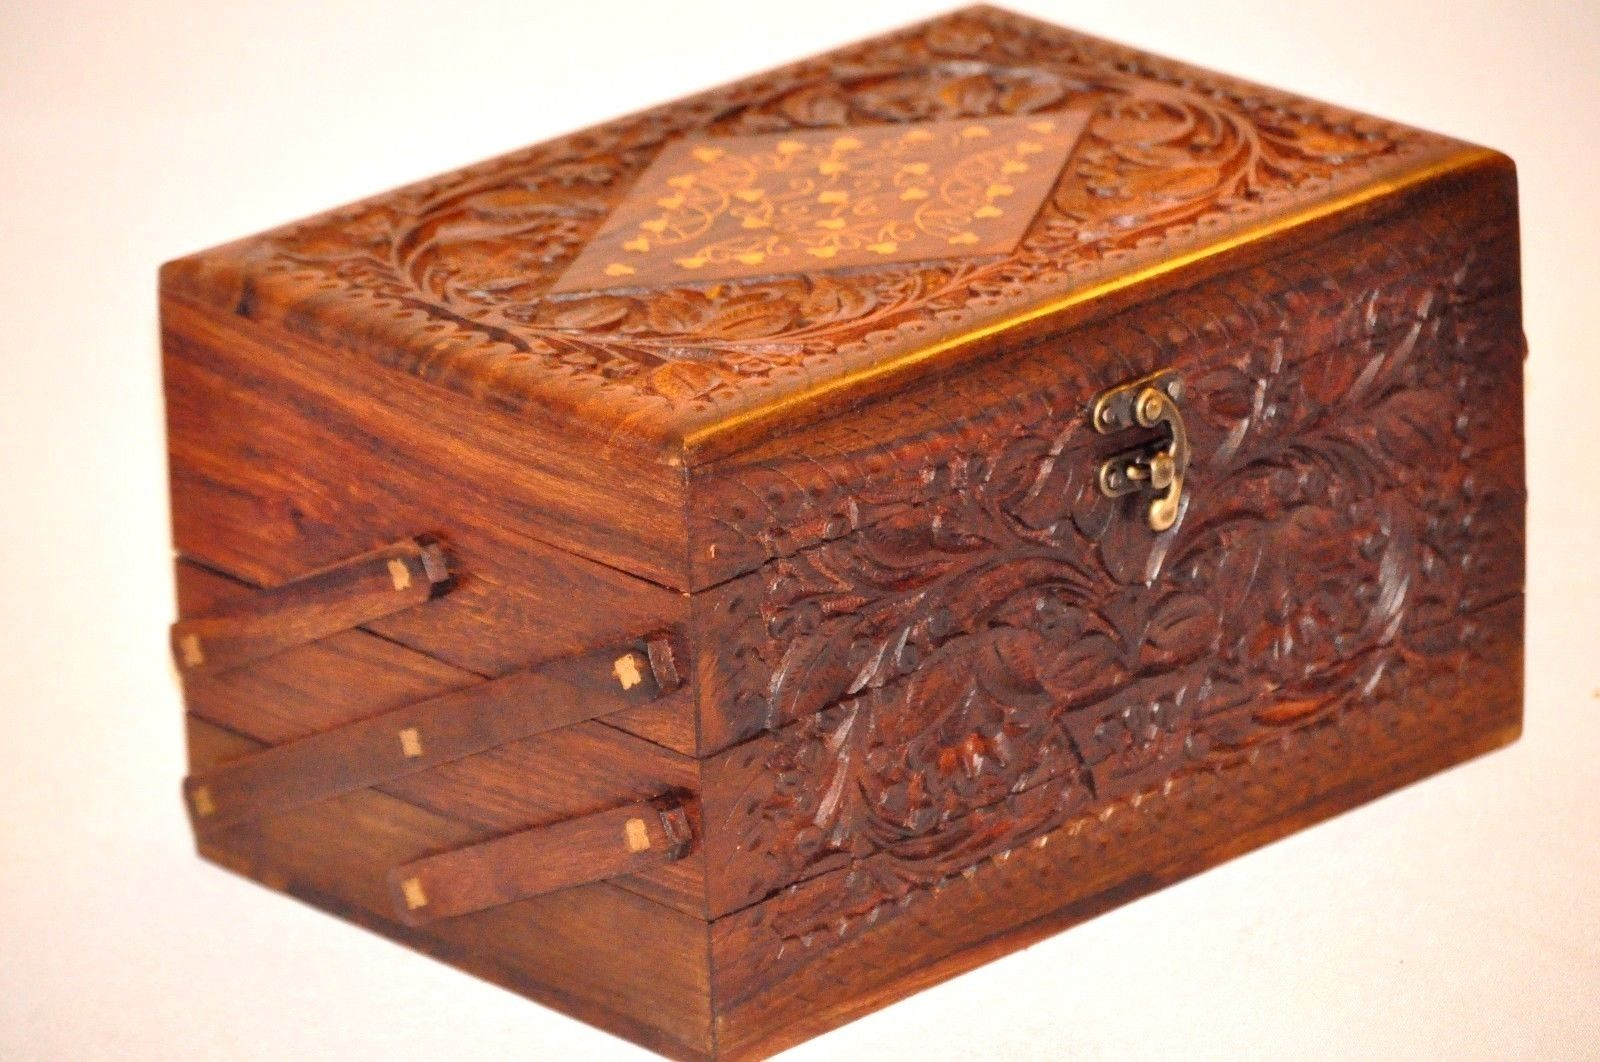 Handmade Rosewood jewelry carved chest box 3 Tier